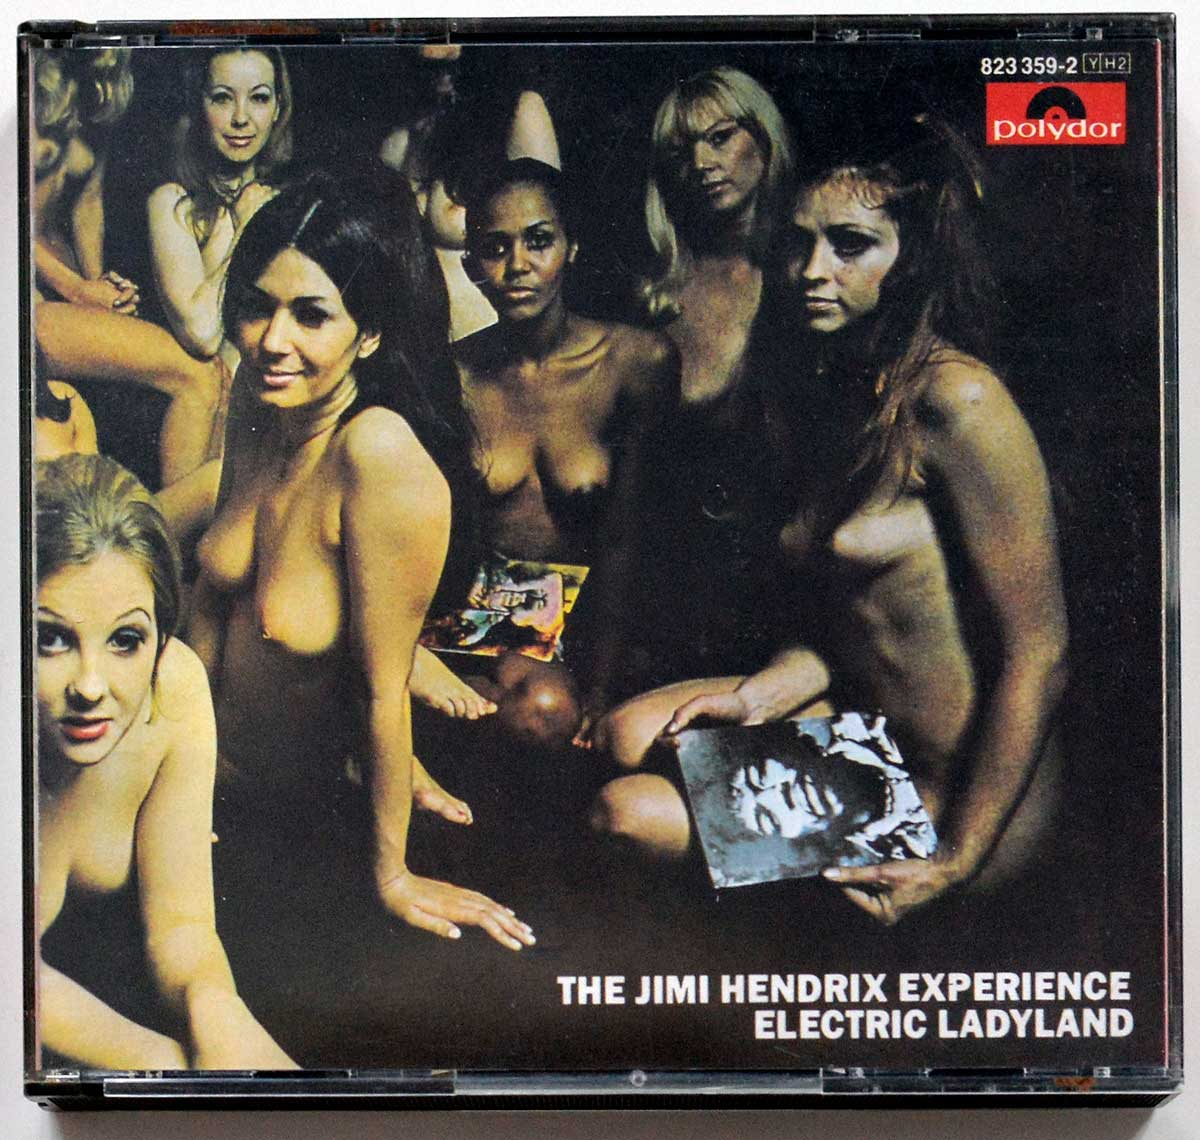 Album Front Cover Photo of THE JIMI HENDRIX EXPERIENCE - Electric Ladyland